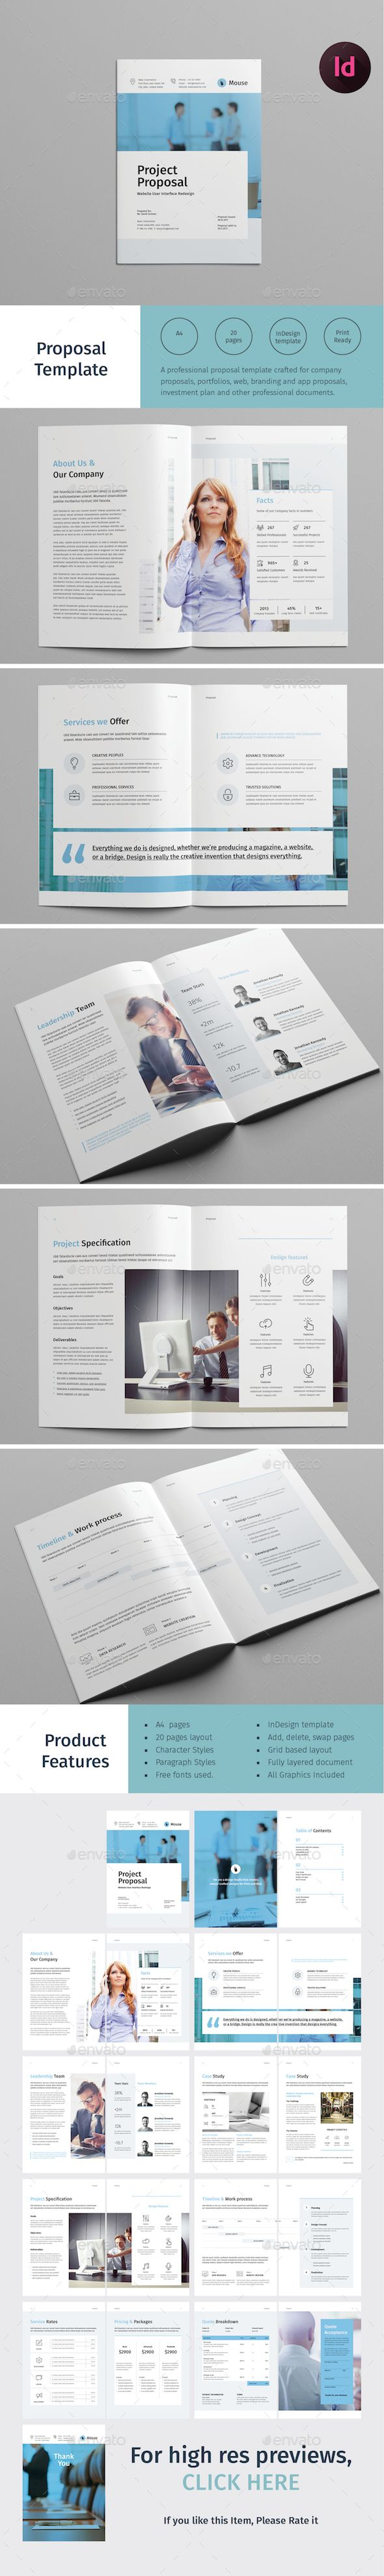 Best Proposal  Invoice Templates Images On